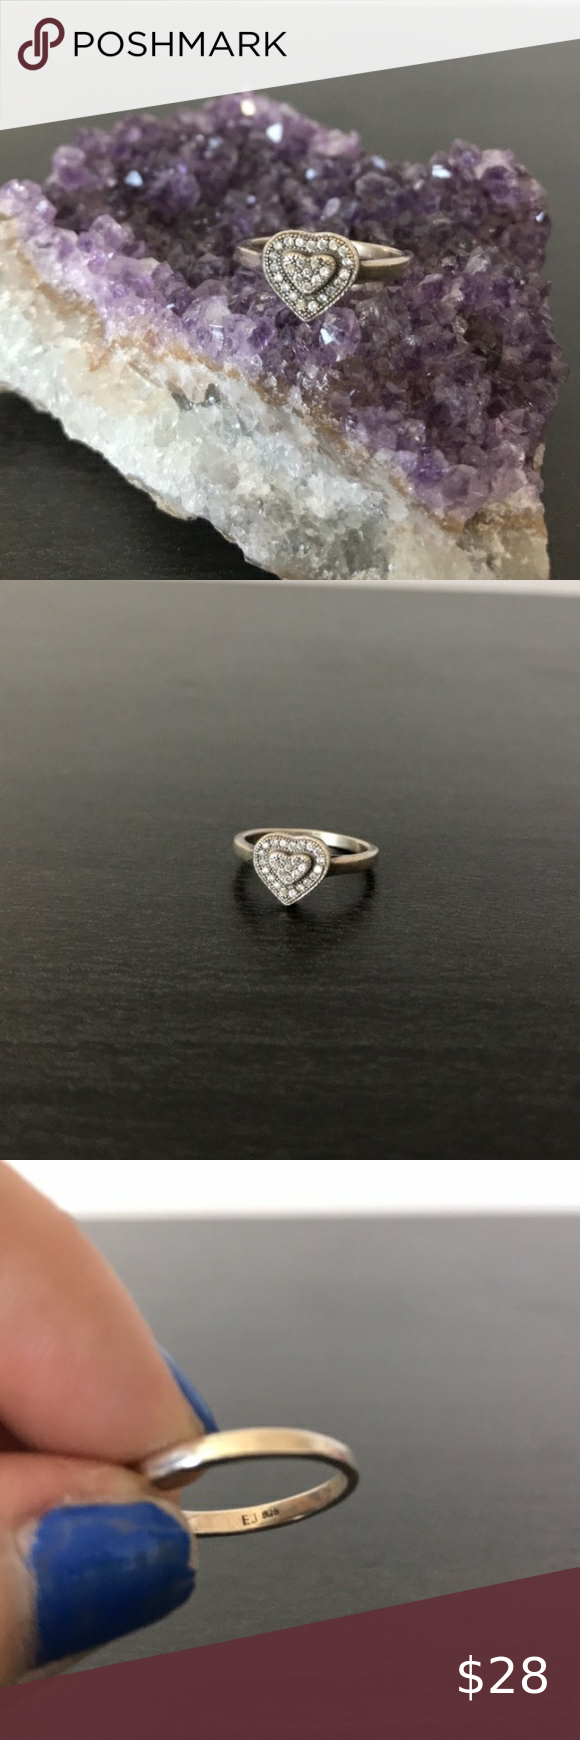 Will Sterling Silver Turn My Finger Green : sterling, silver, finger, green, Sterling, Silver, Heart, Shaped, Ring., Little, Sparkly, Stones., Wil…, Womens, Jewelry, Rings,, Rings